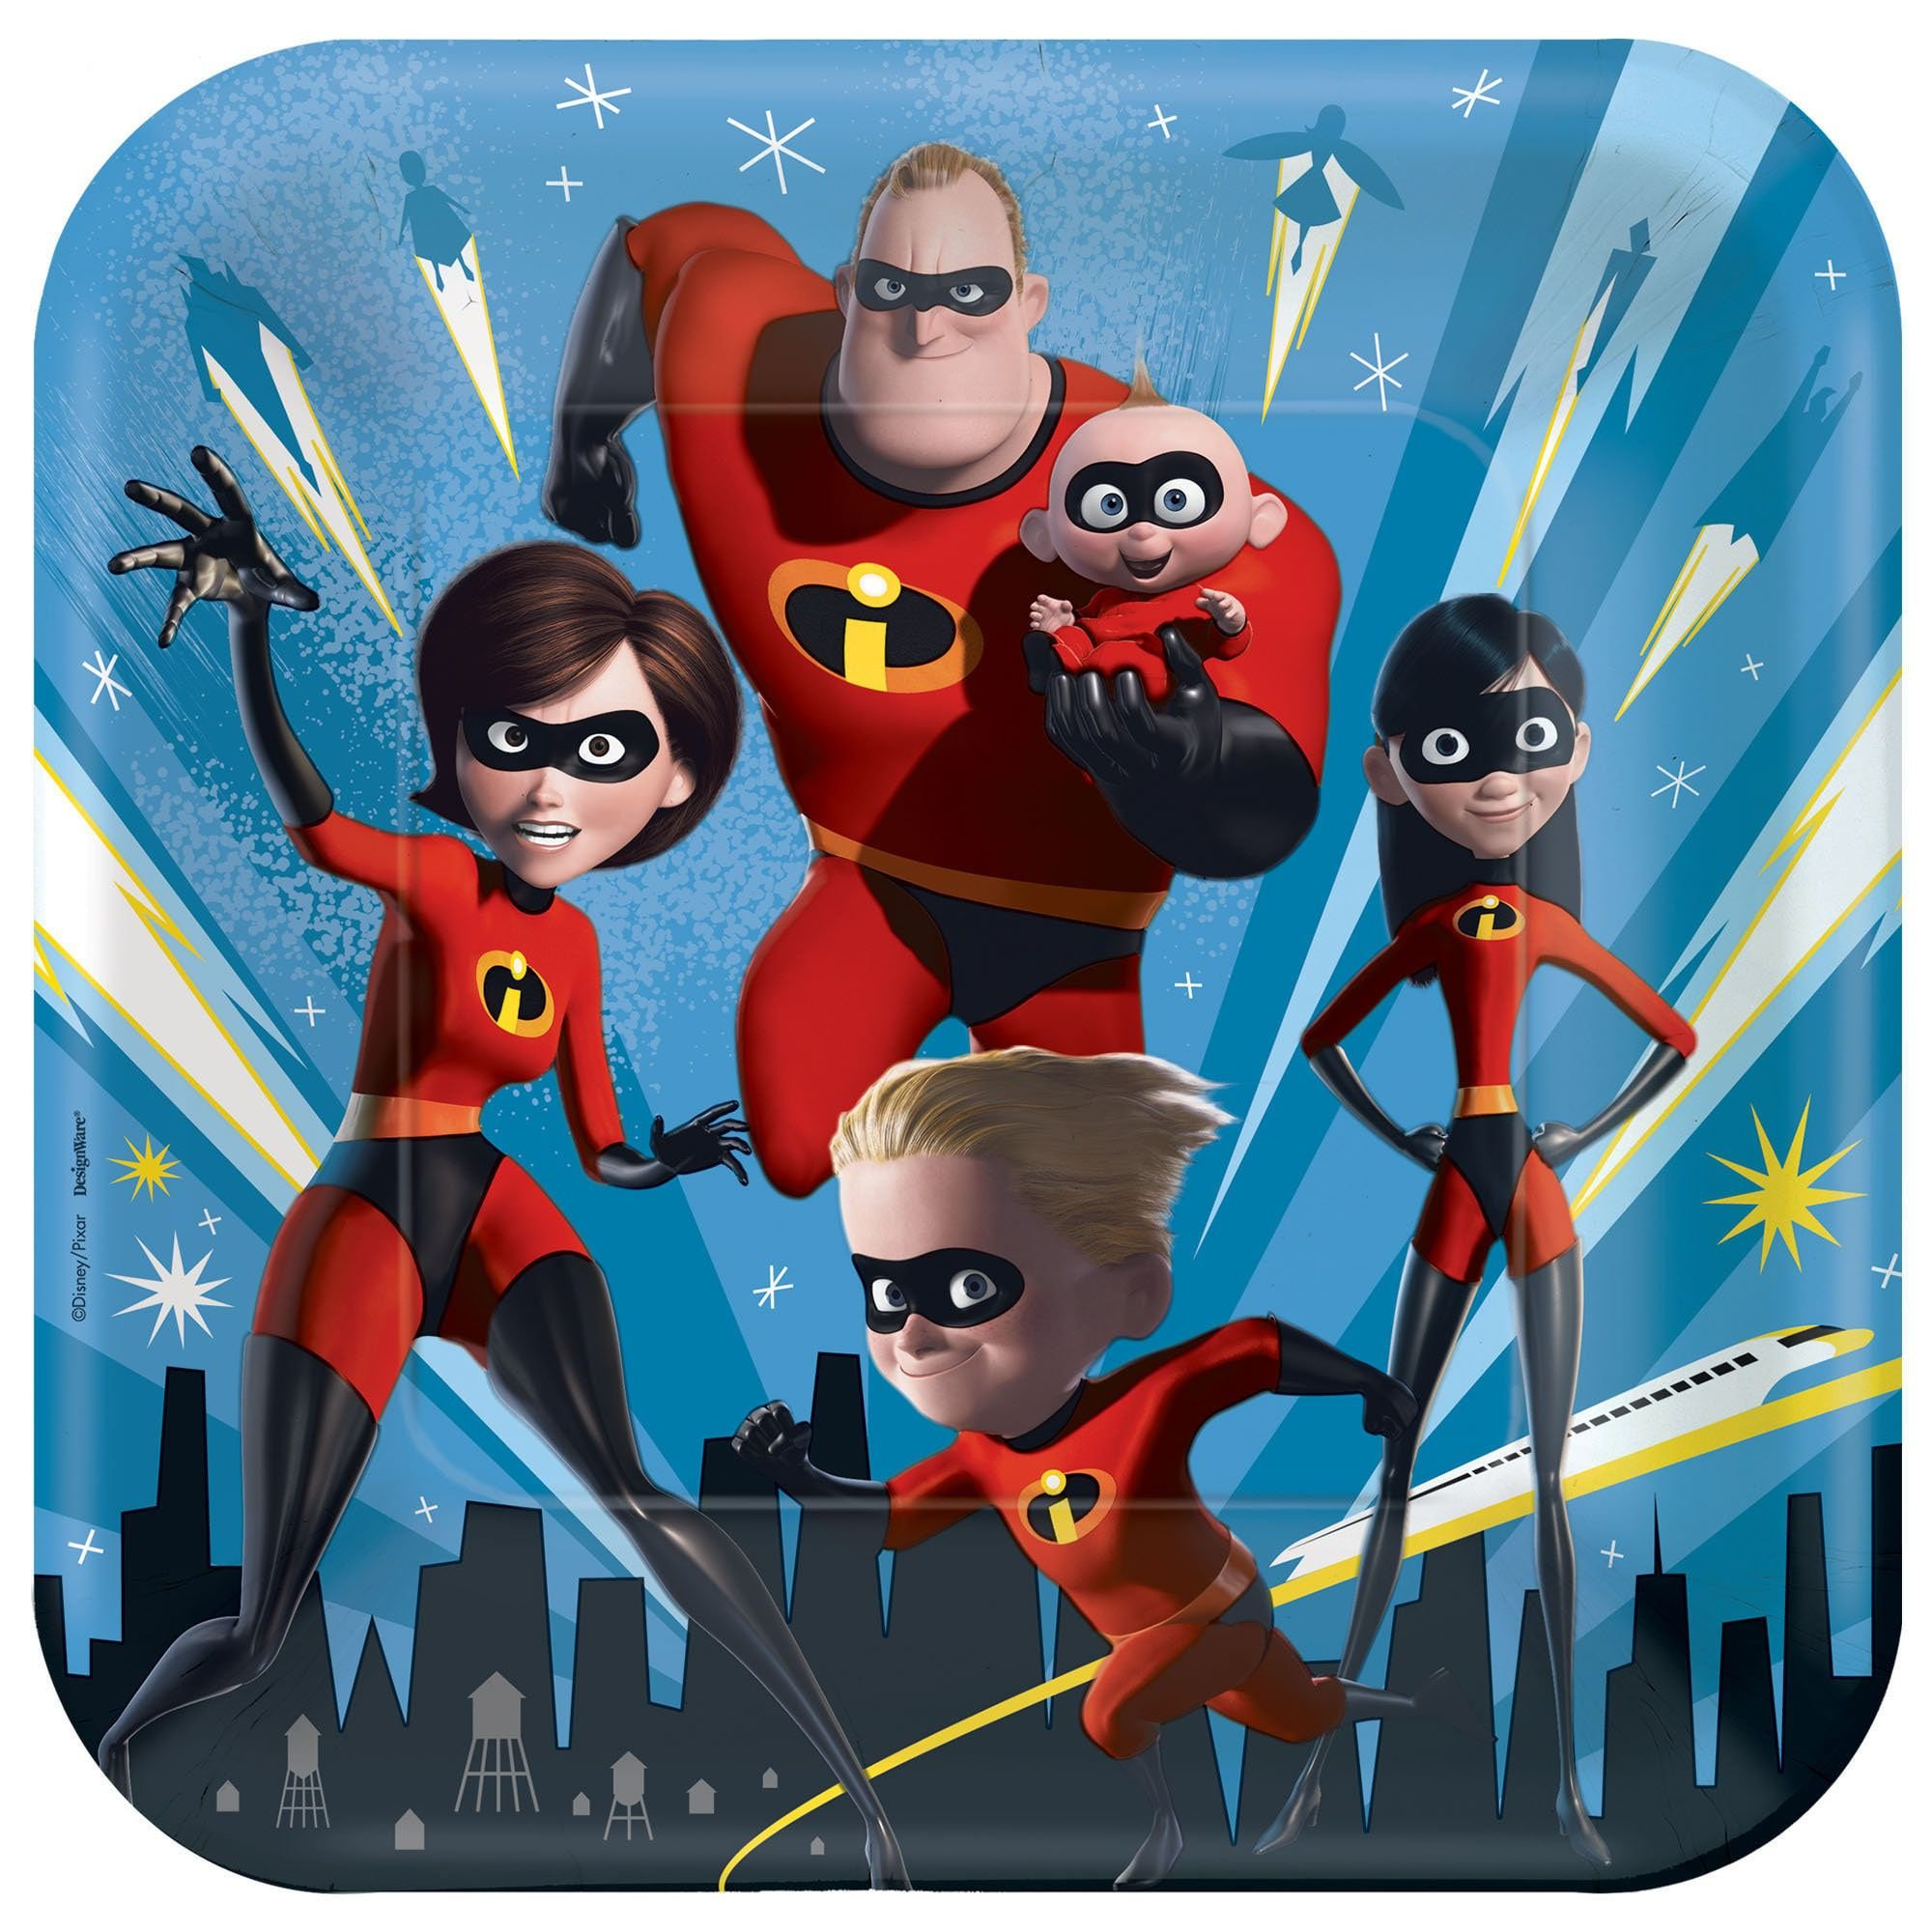 Disney's The Incredibles 2 Birthday Party Supplies 48 Pack Lunch Plates